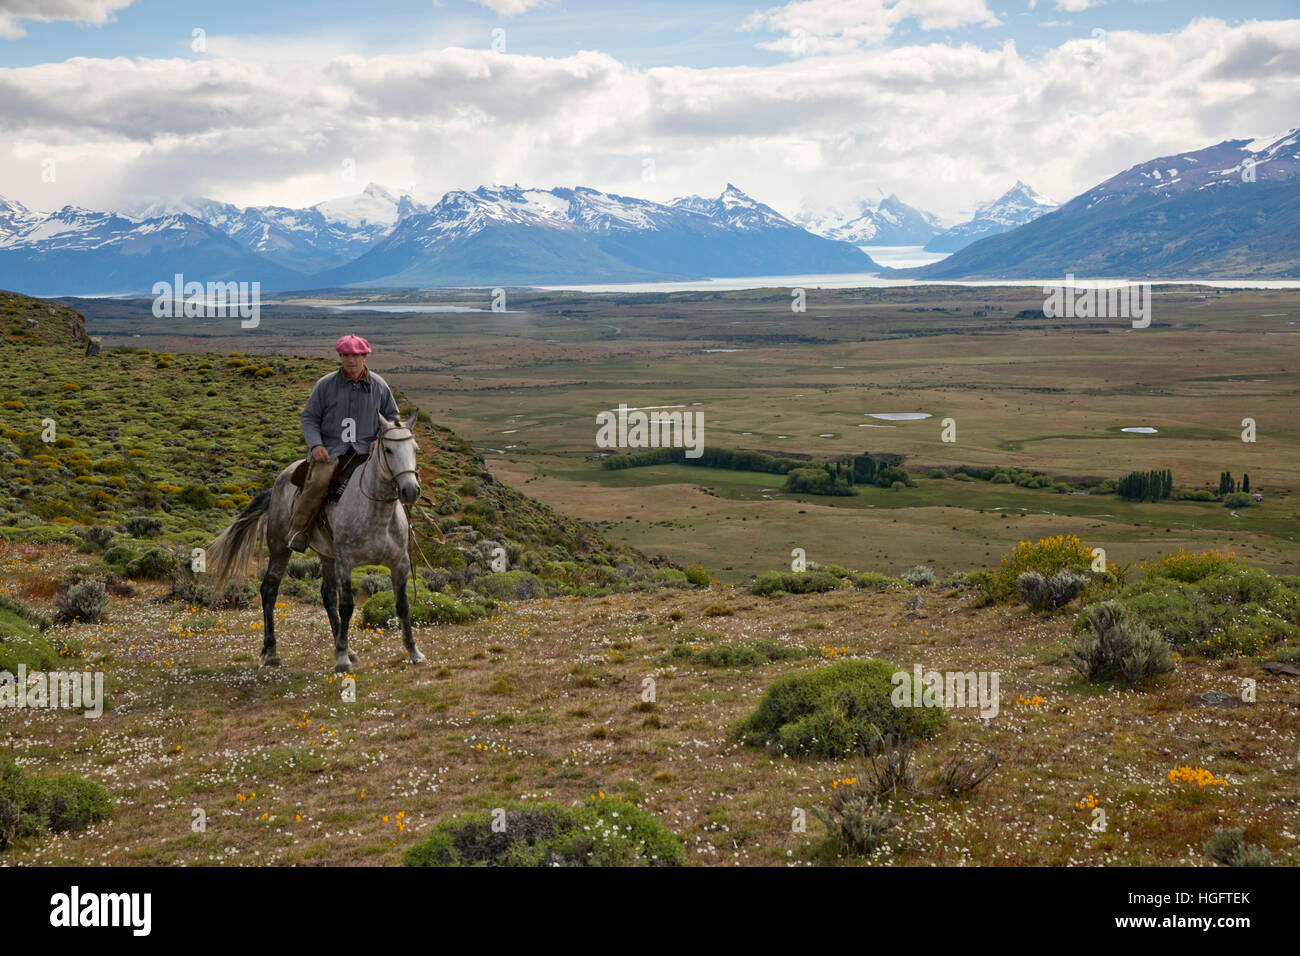 Gaucho on horseback at Estancia Alta Vista with the Andes and Perito Moreno Glacier, El Calafate, Patagonia, Argentina Stock Photo